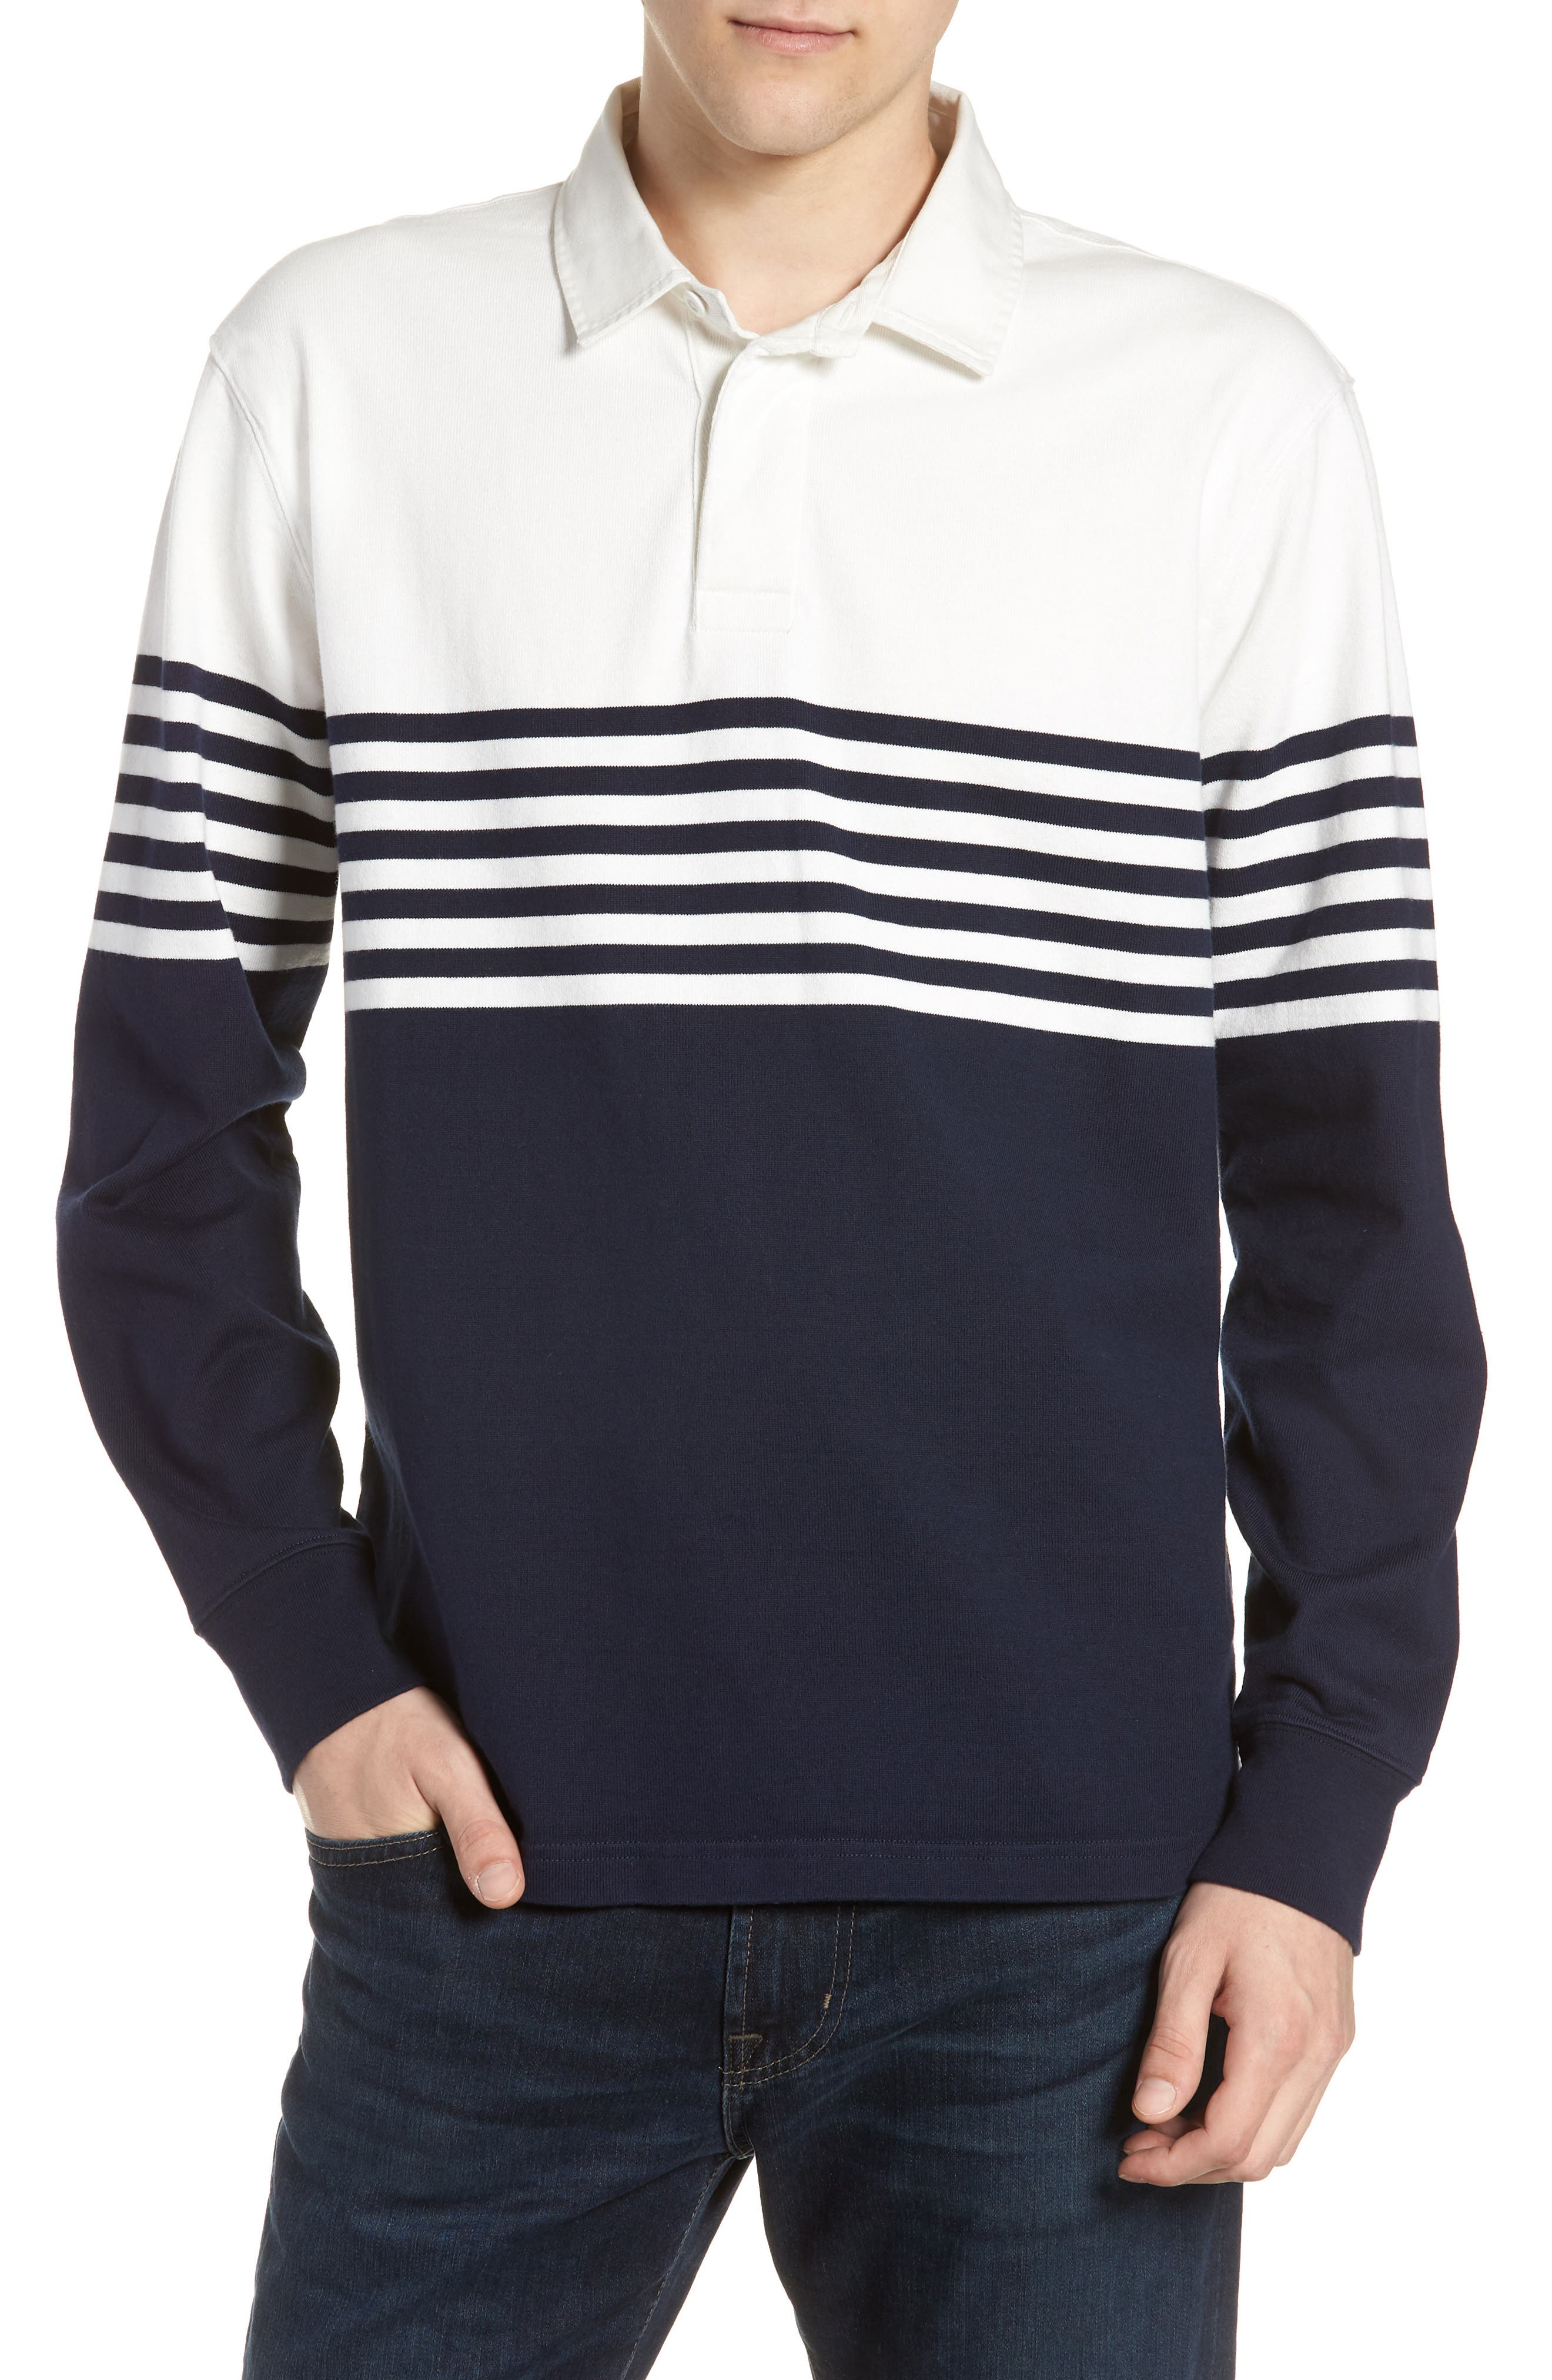 1984 Colorblock Stripe Rugby Shirt,                         Main,                         color, Navy White